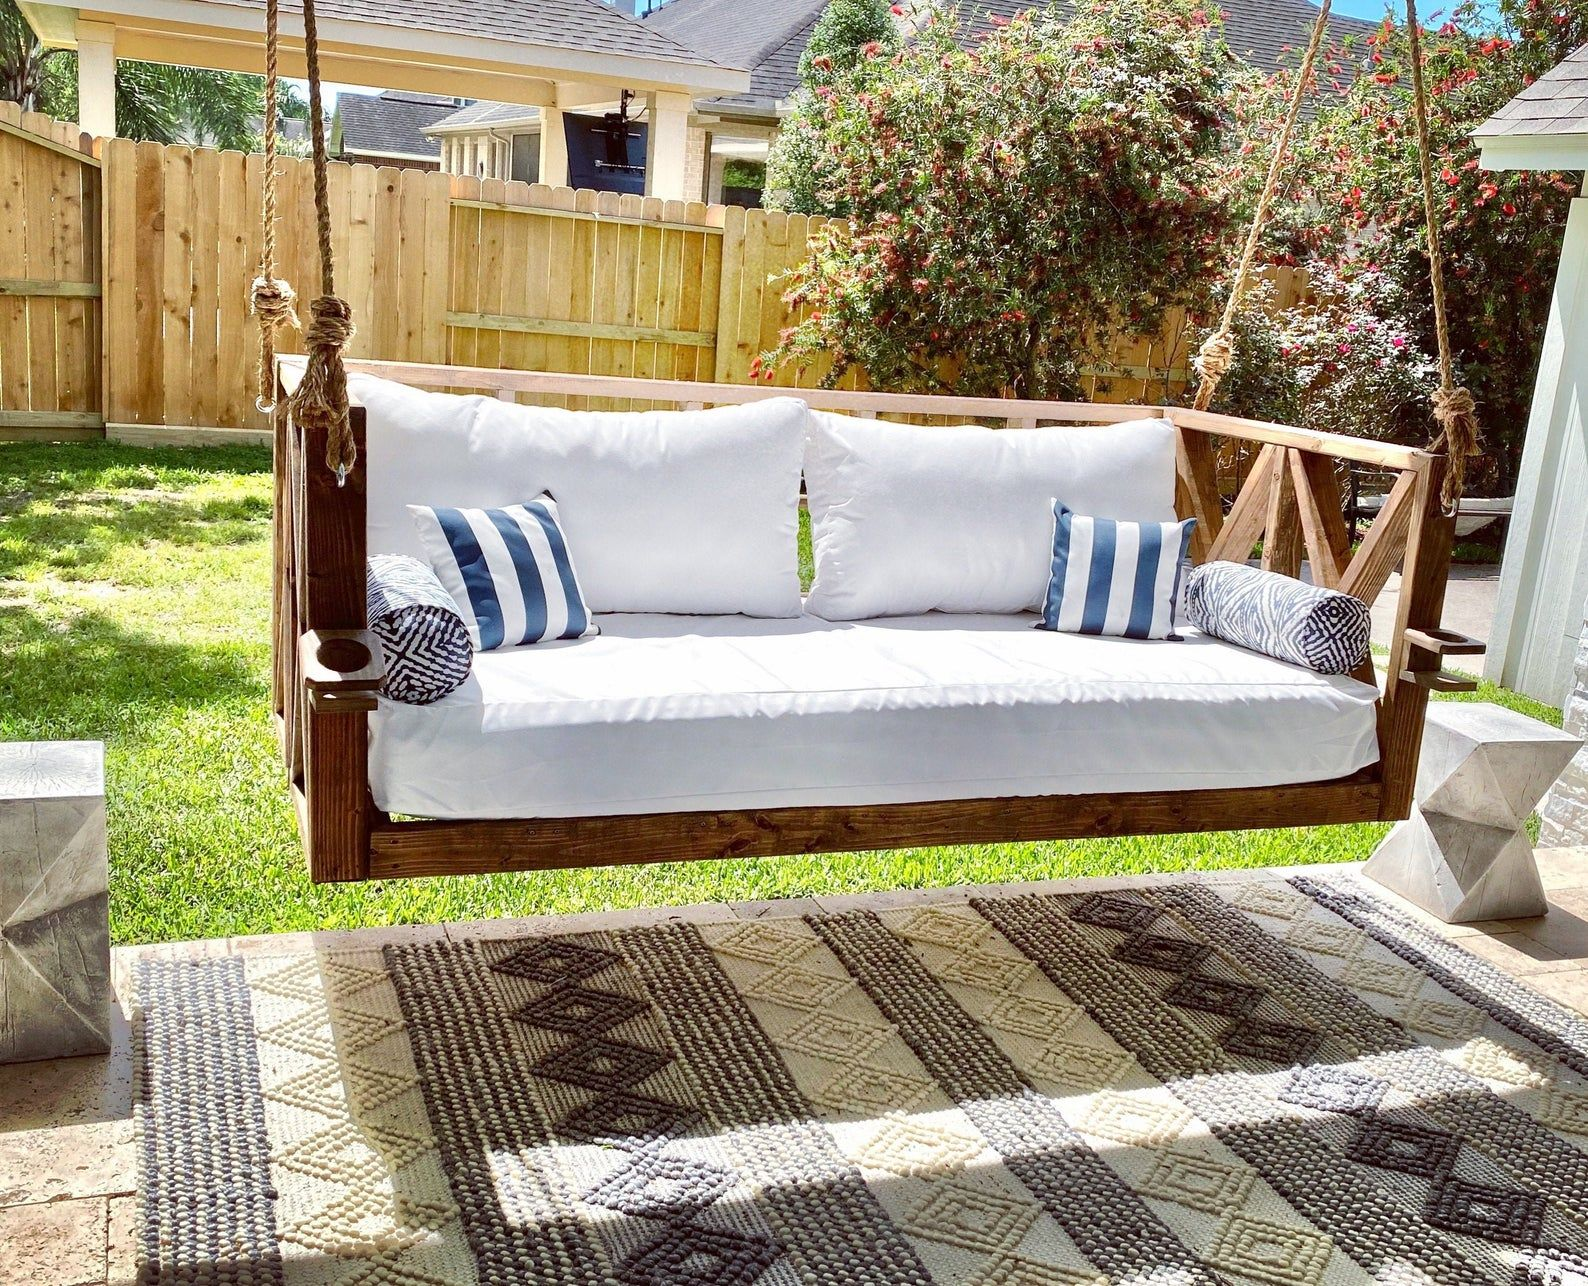 Sunbrella Custom Daybed Cushion Crib Bed Size Porch Swing Etsy In 2020 Outdoor Mattress Porch Swing Outdoor Daybed Cushion